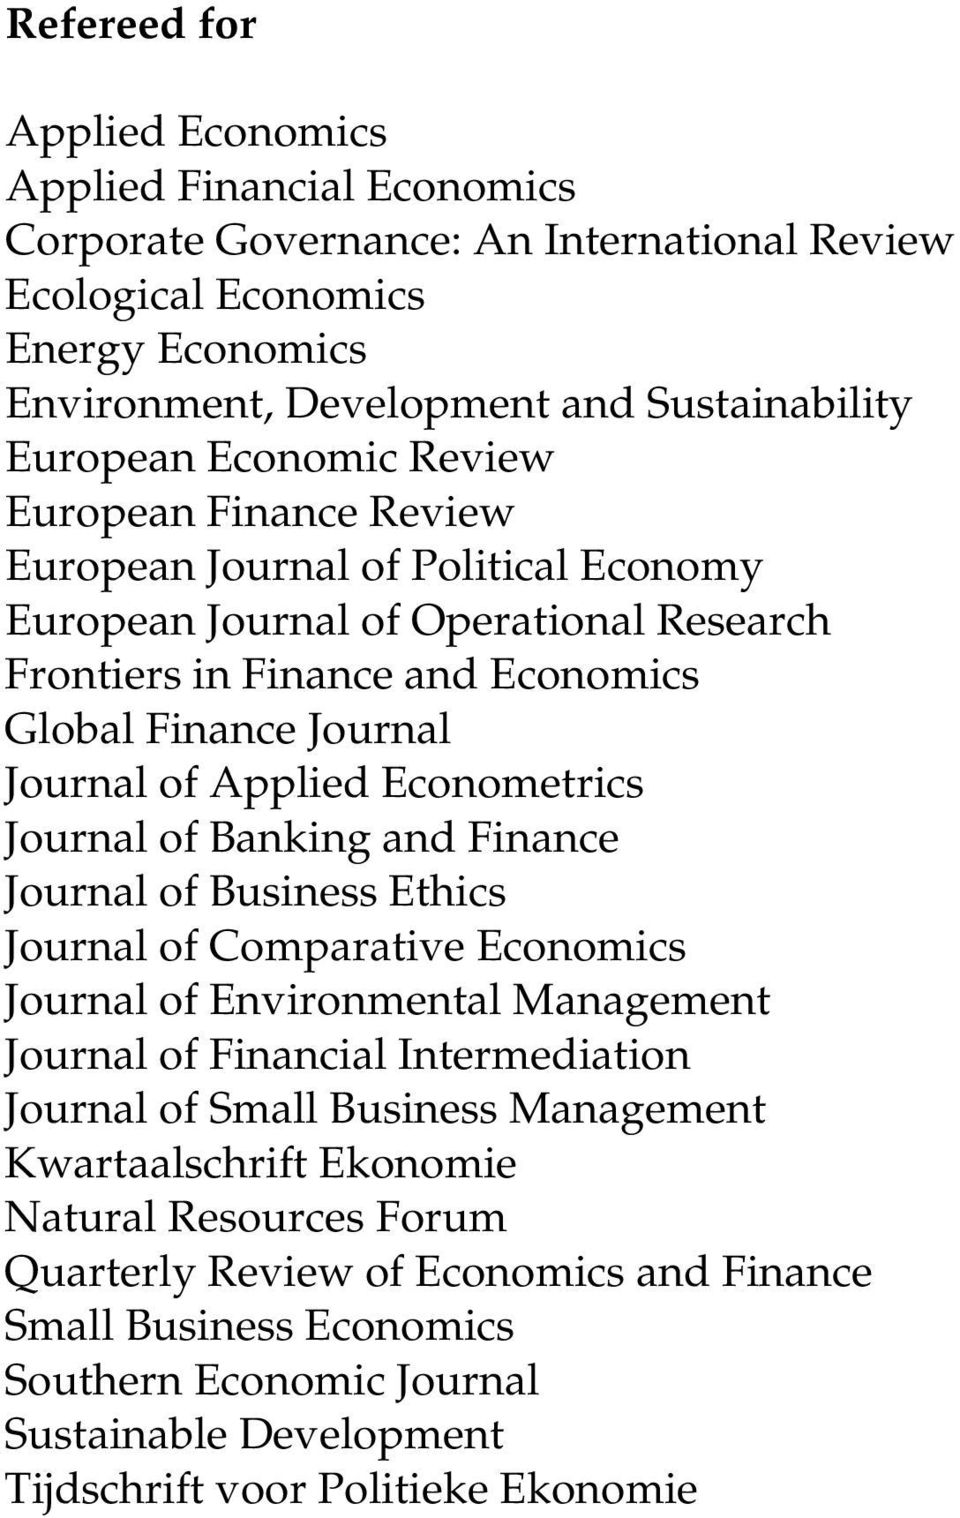 Econometrics Journal of Banking and Finance Journal of Business Ethics Journal of Comparative Economics Journal of Environmental Management Journal of Financial Intermediation Journal of Small